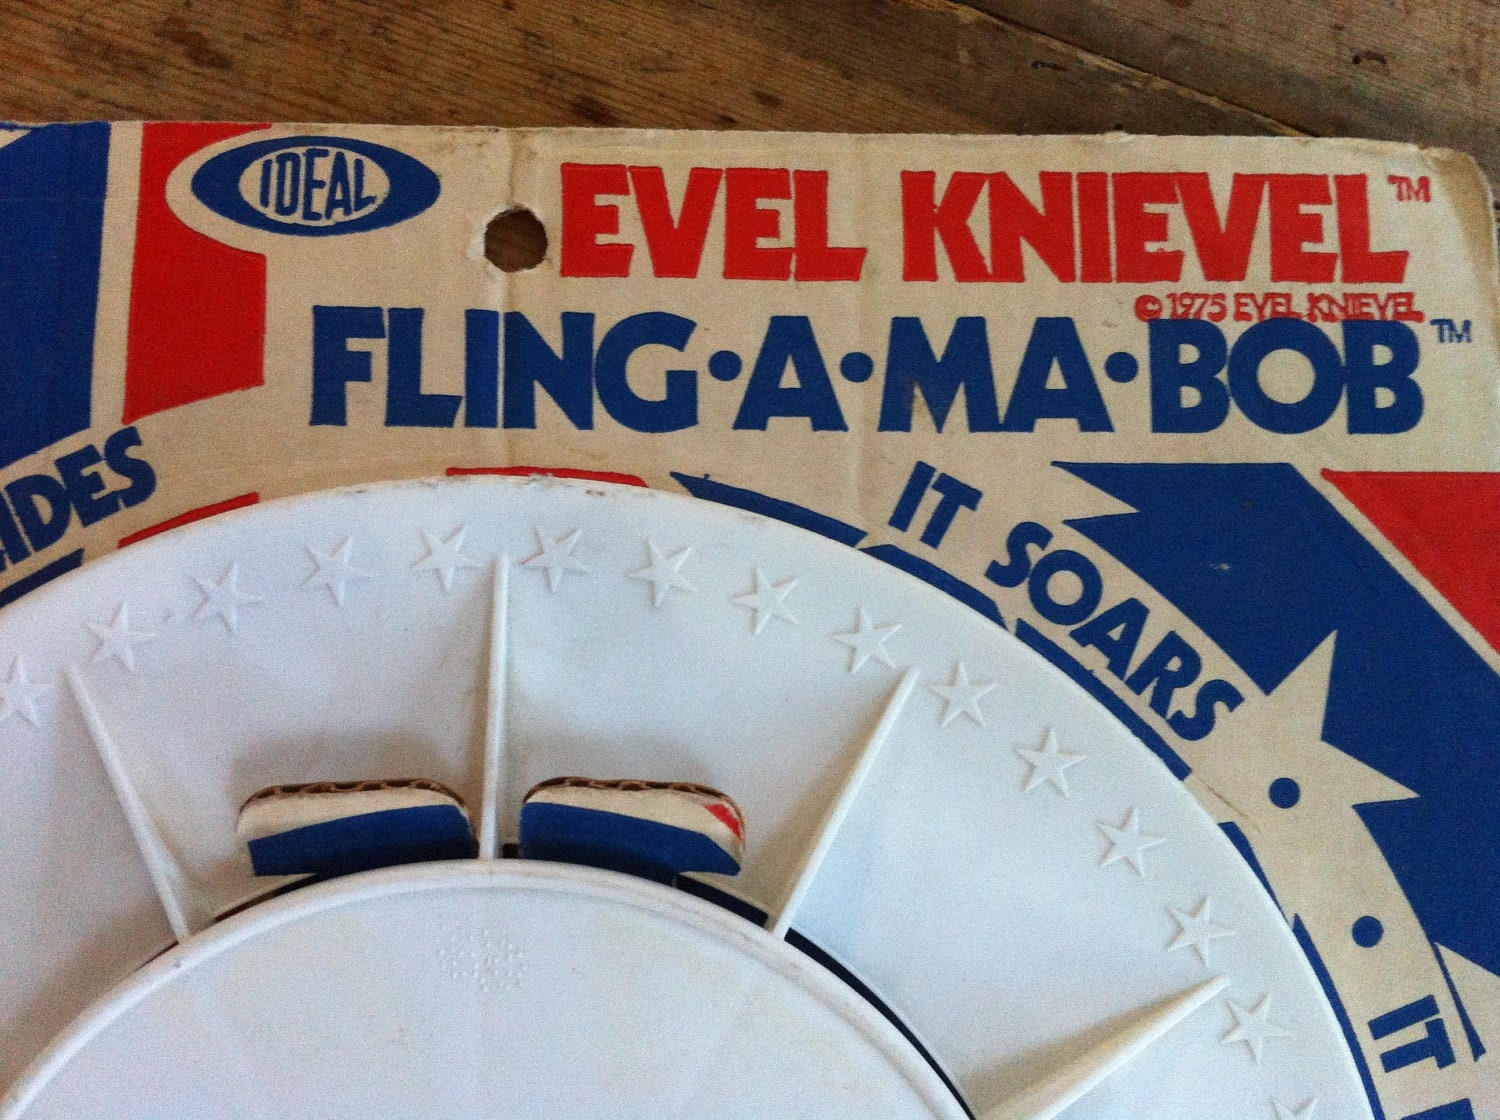 1975 vintage evel knievel frisbee toy by itsbsbooty on etsy. Black Bedroom Furniture Sets. Home Design Ideas